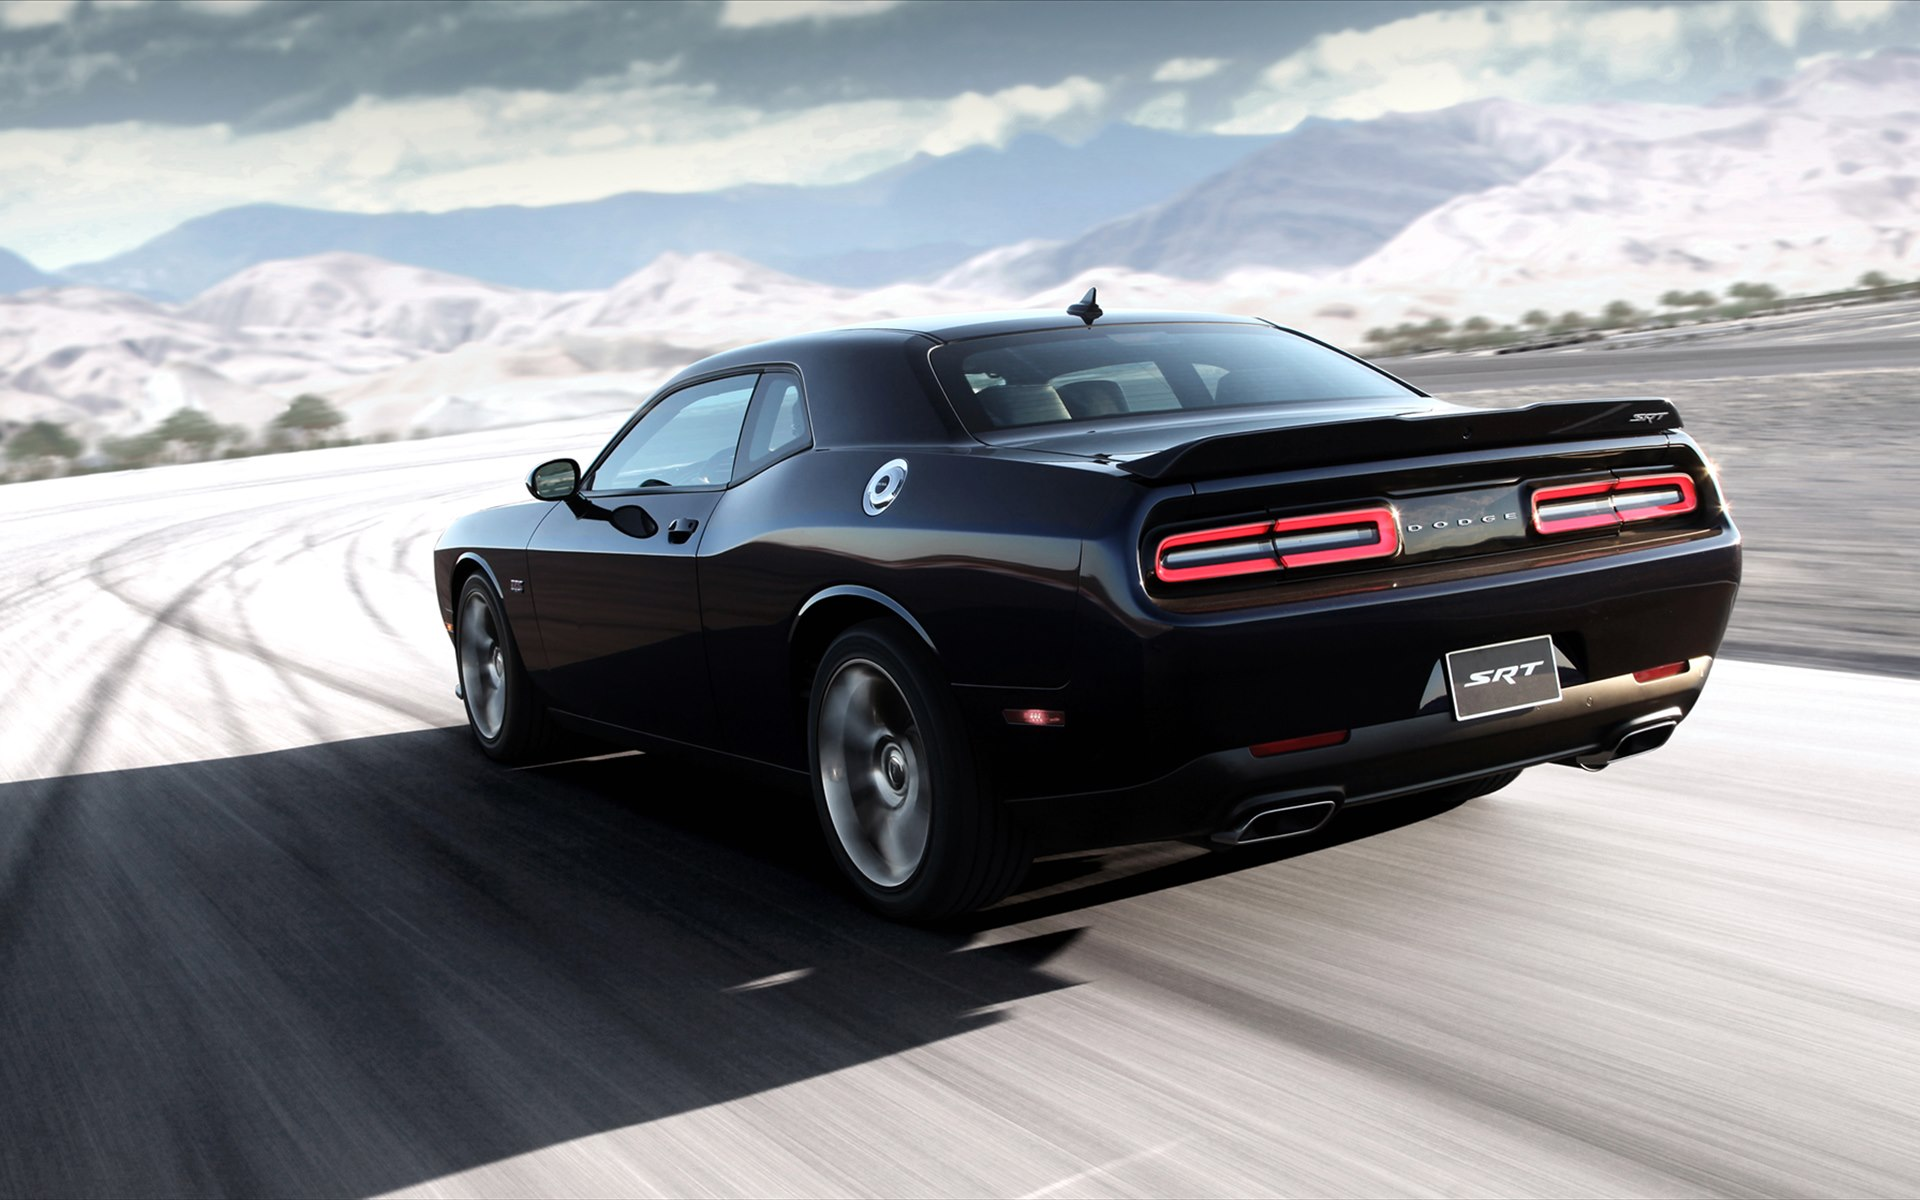 2015 Dodge Challenger SRT 4 Wallpaper HD Car Wallpapers 1920x1200